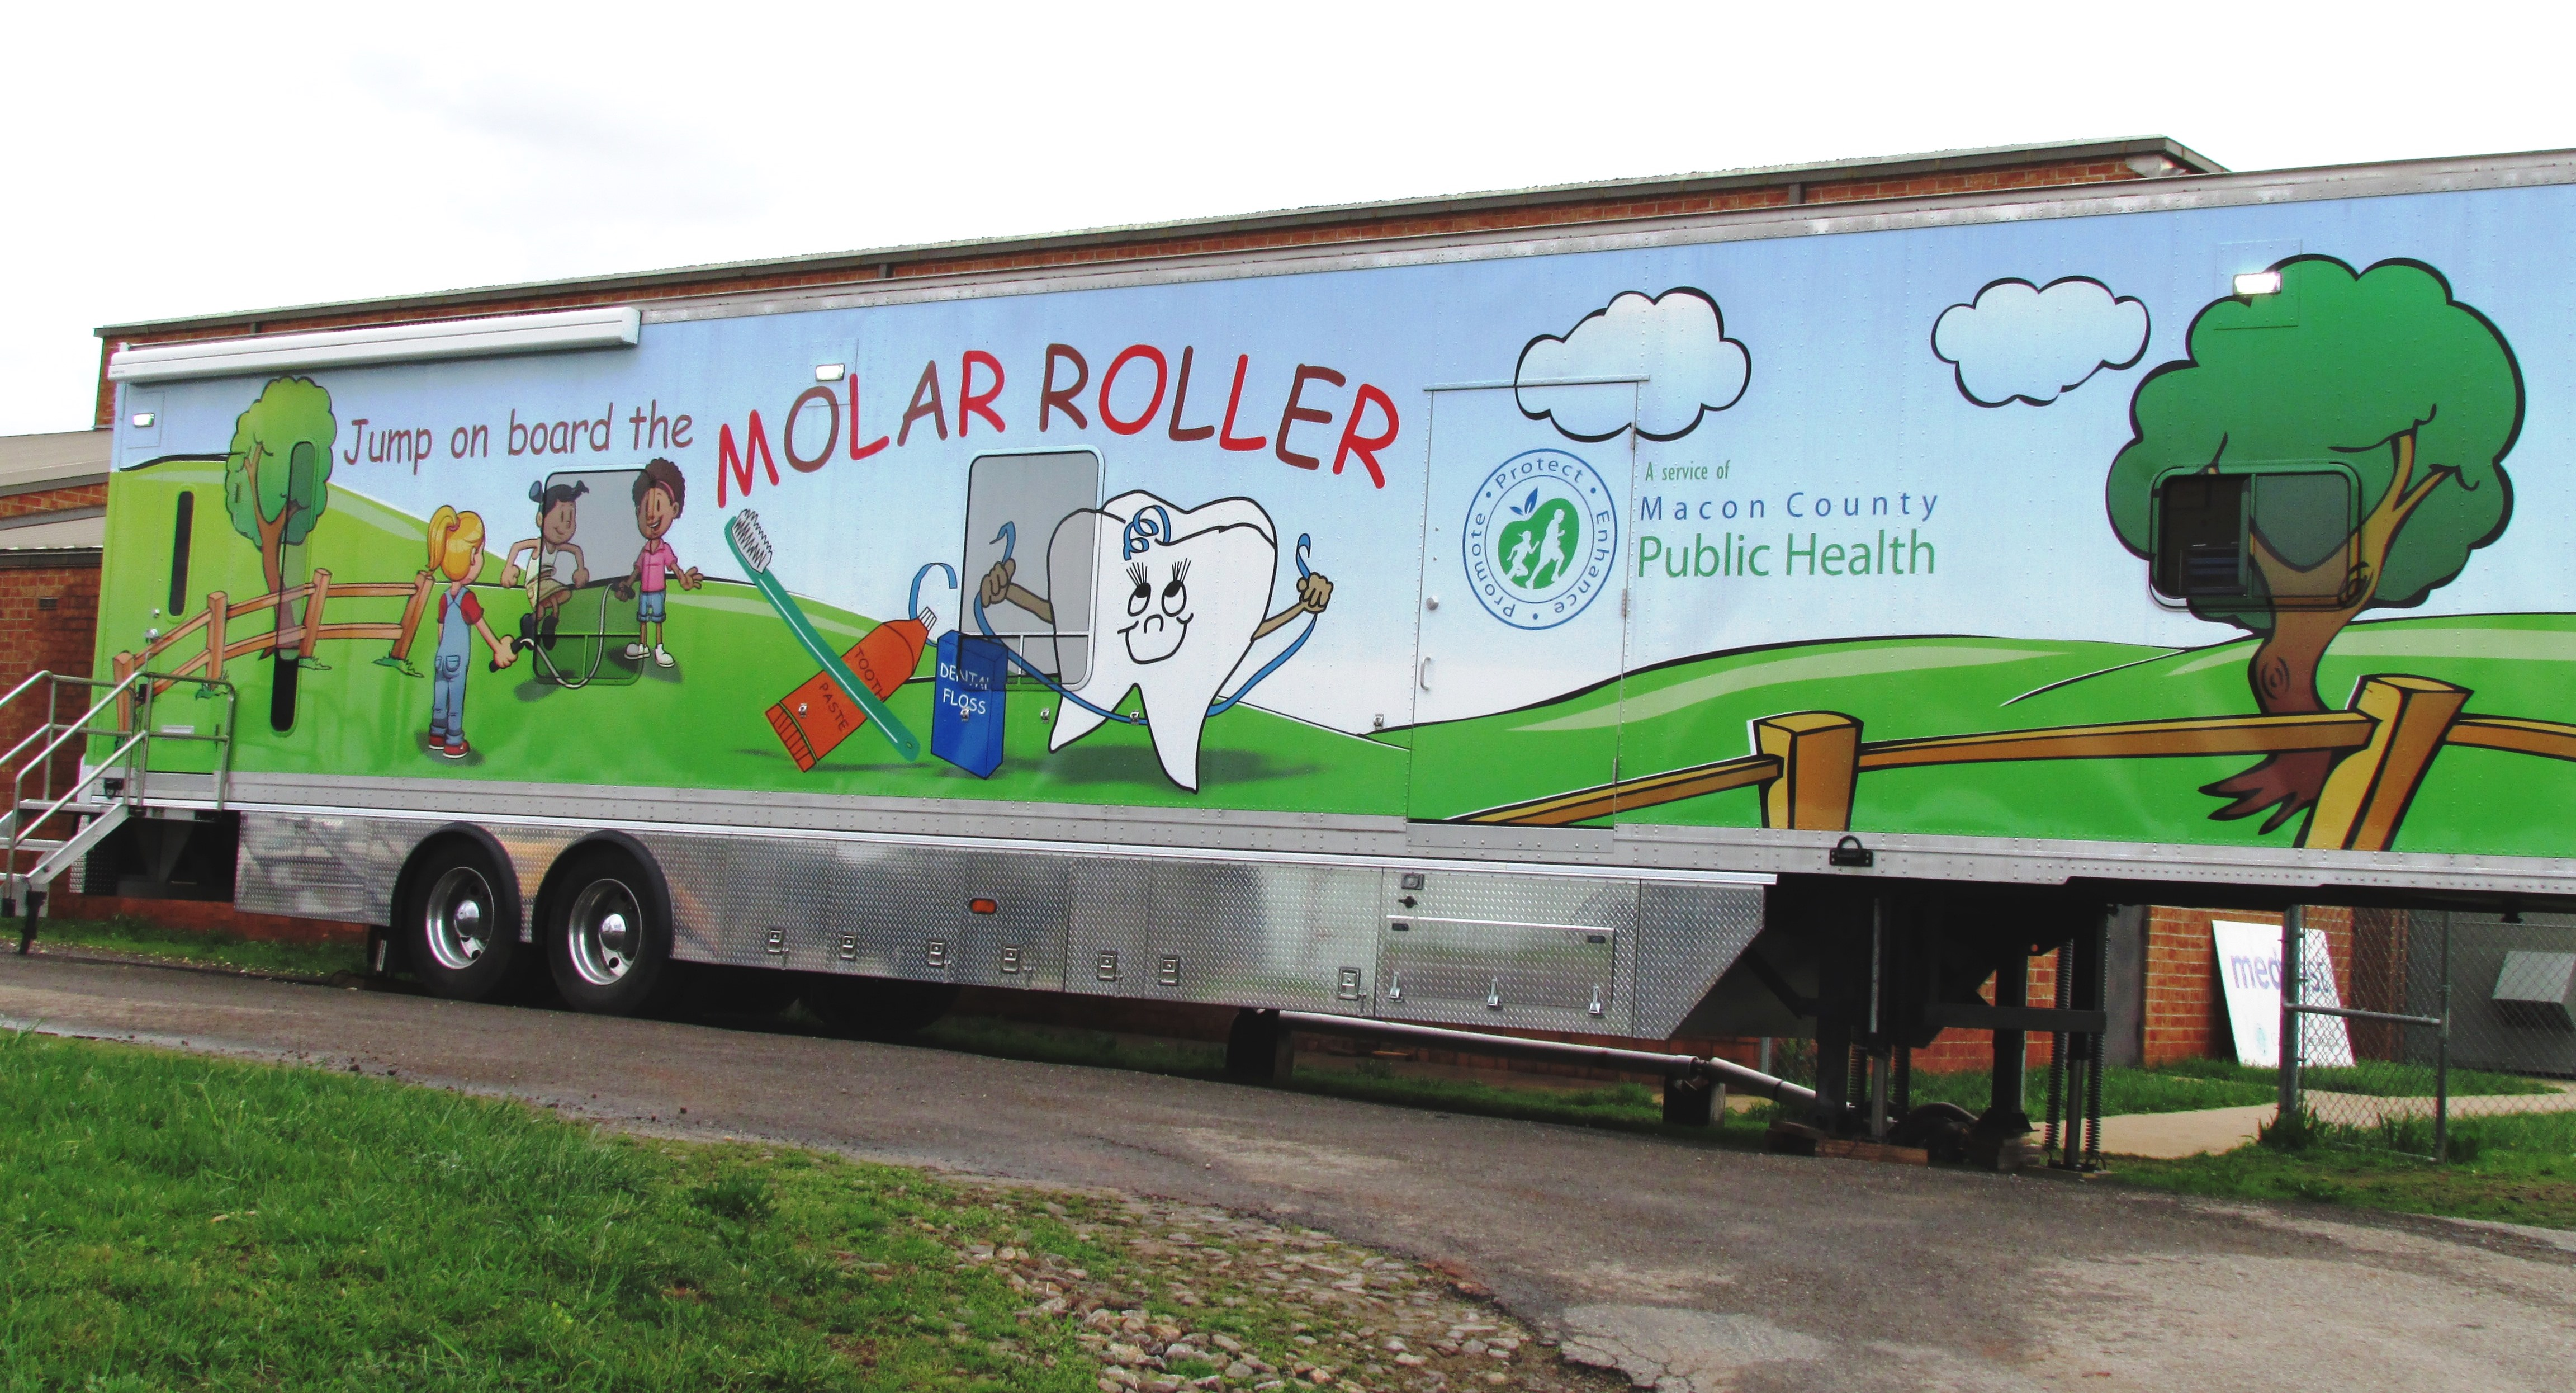 molar roller macon county health department franklin nc